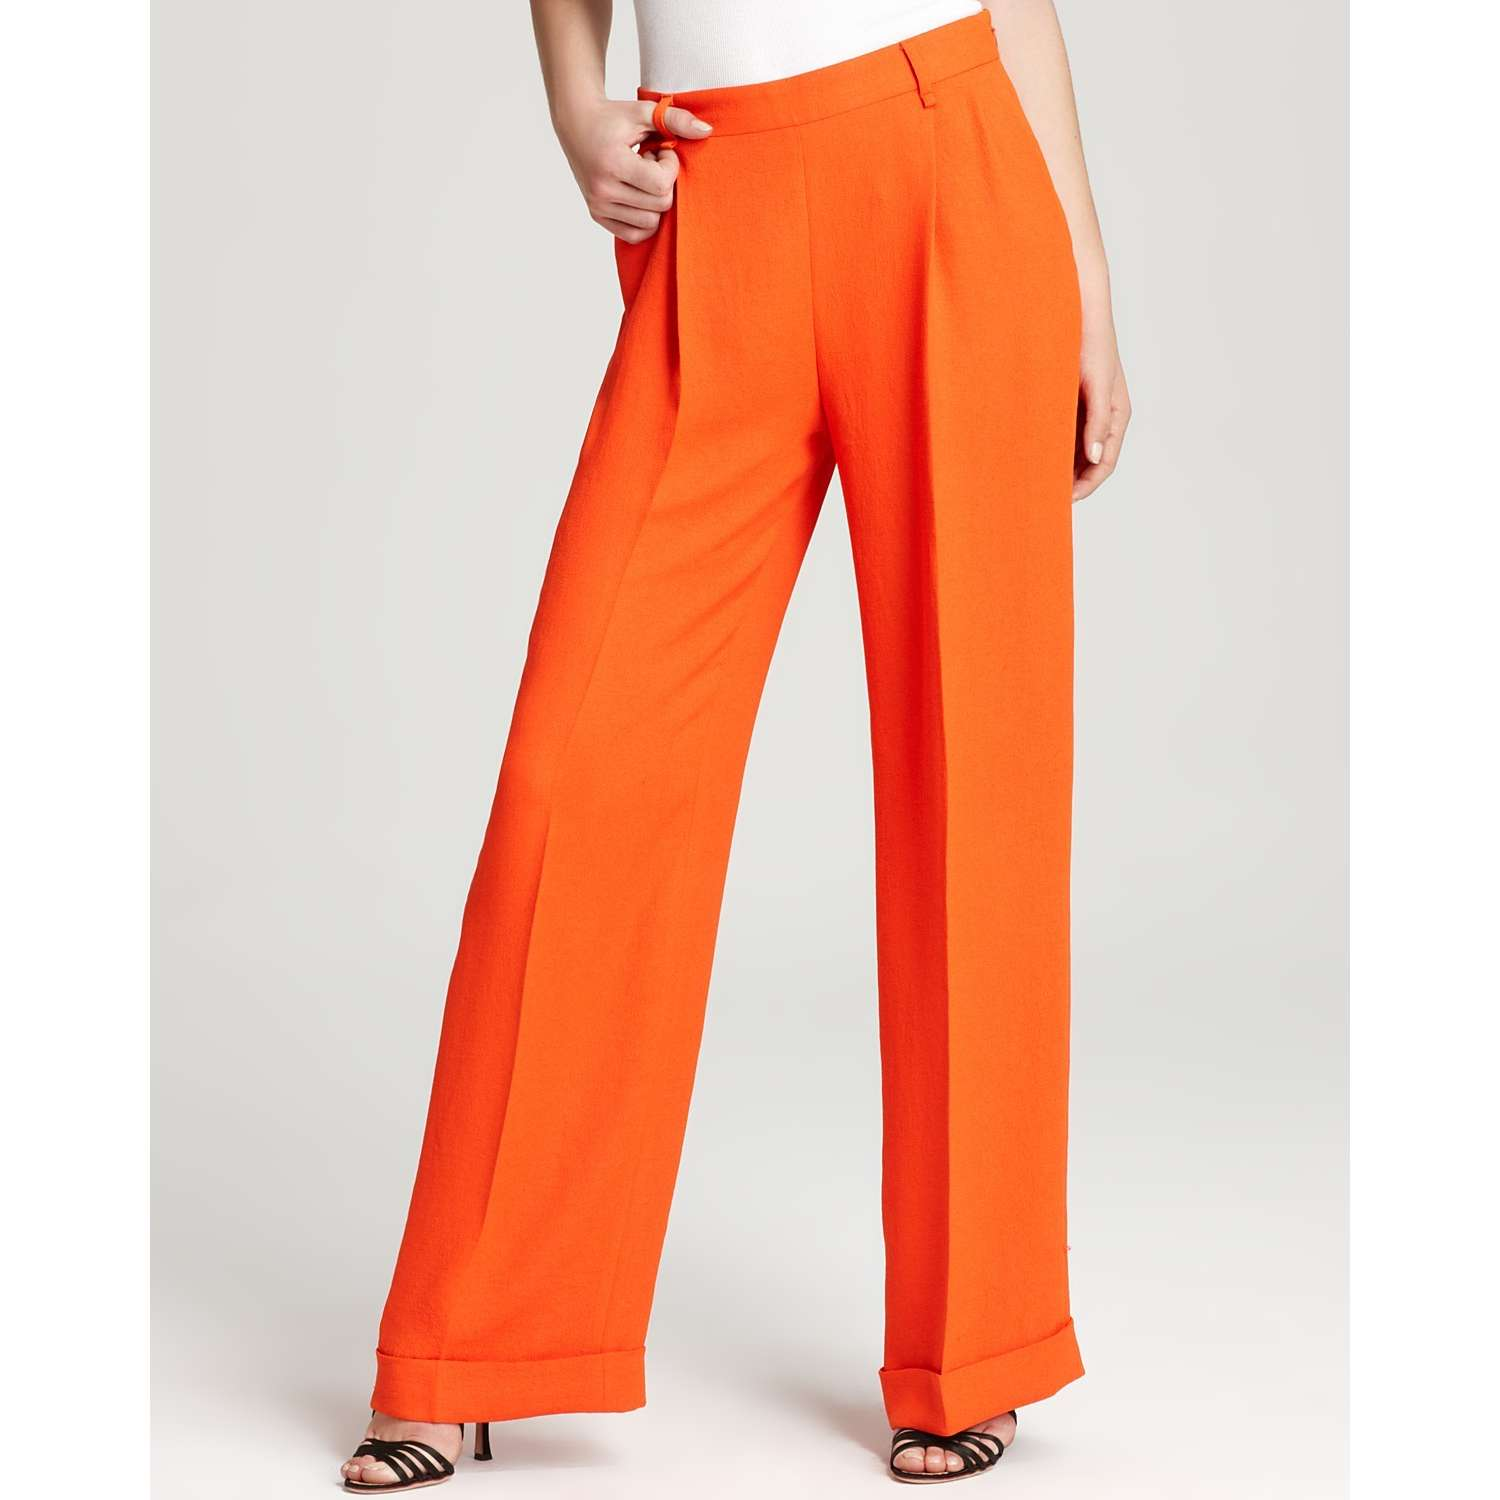 S Women S Fashion Orange Pants